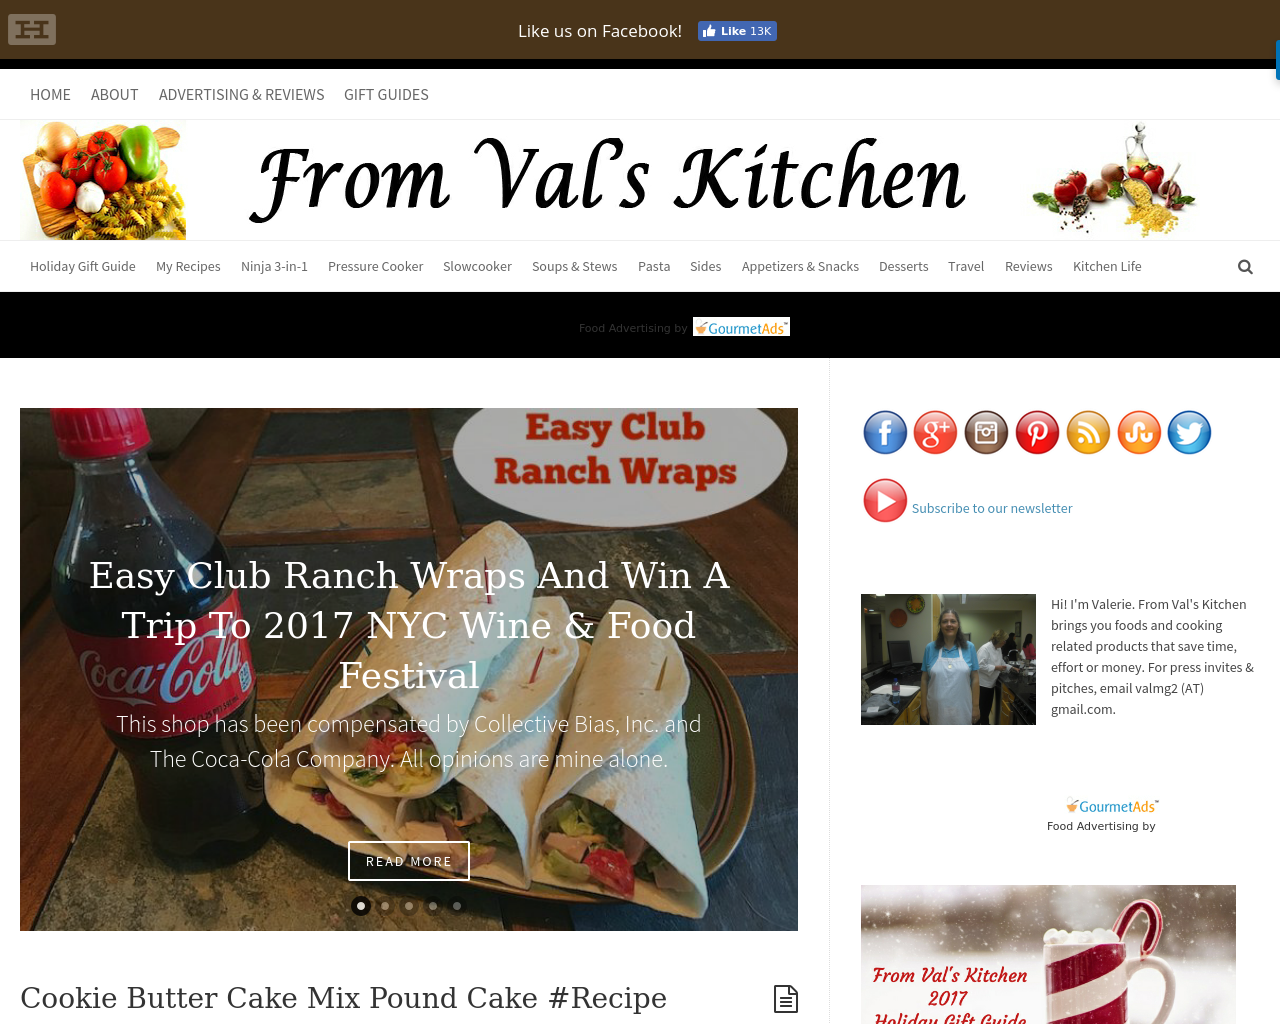 From-Val's-Kitchen-Advertising-Reviews-Pricing